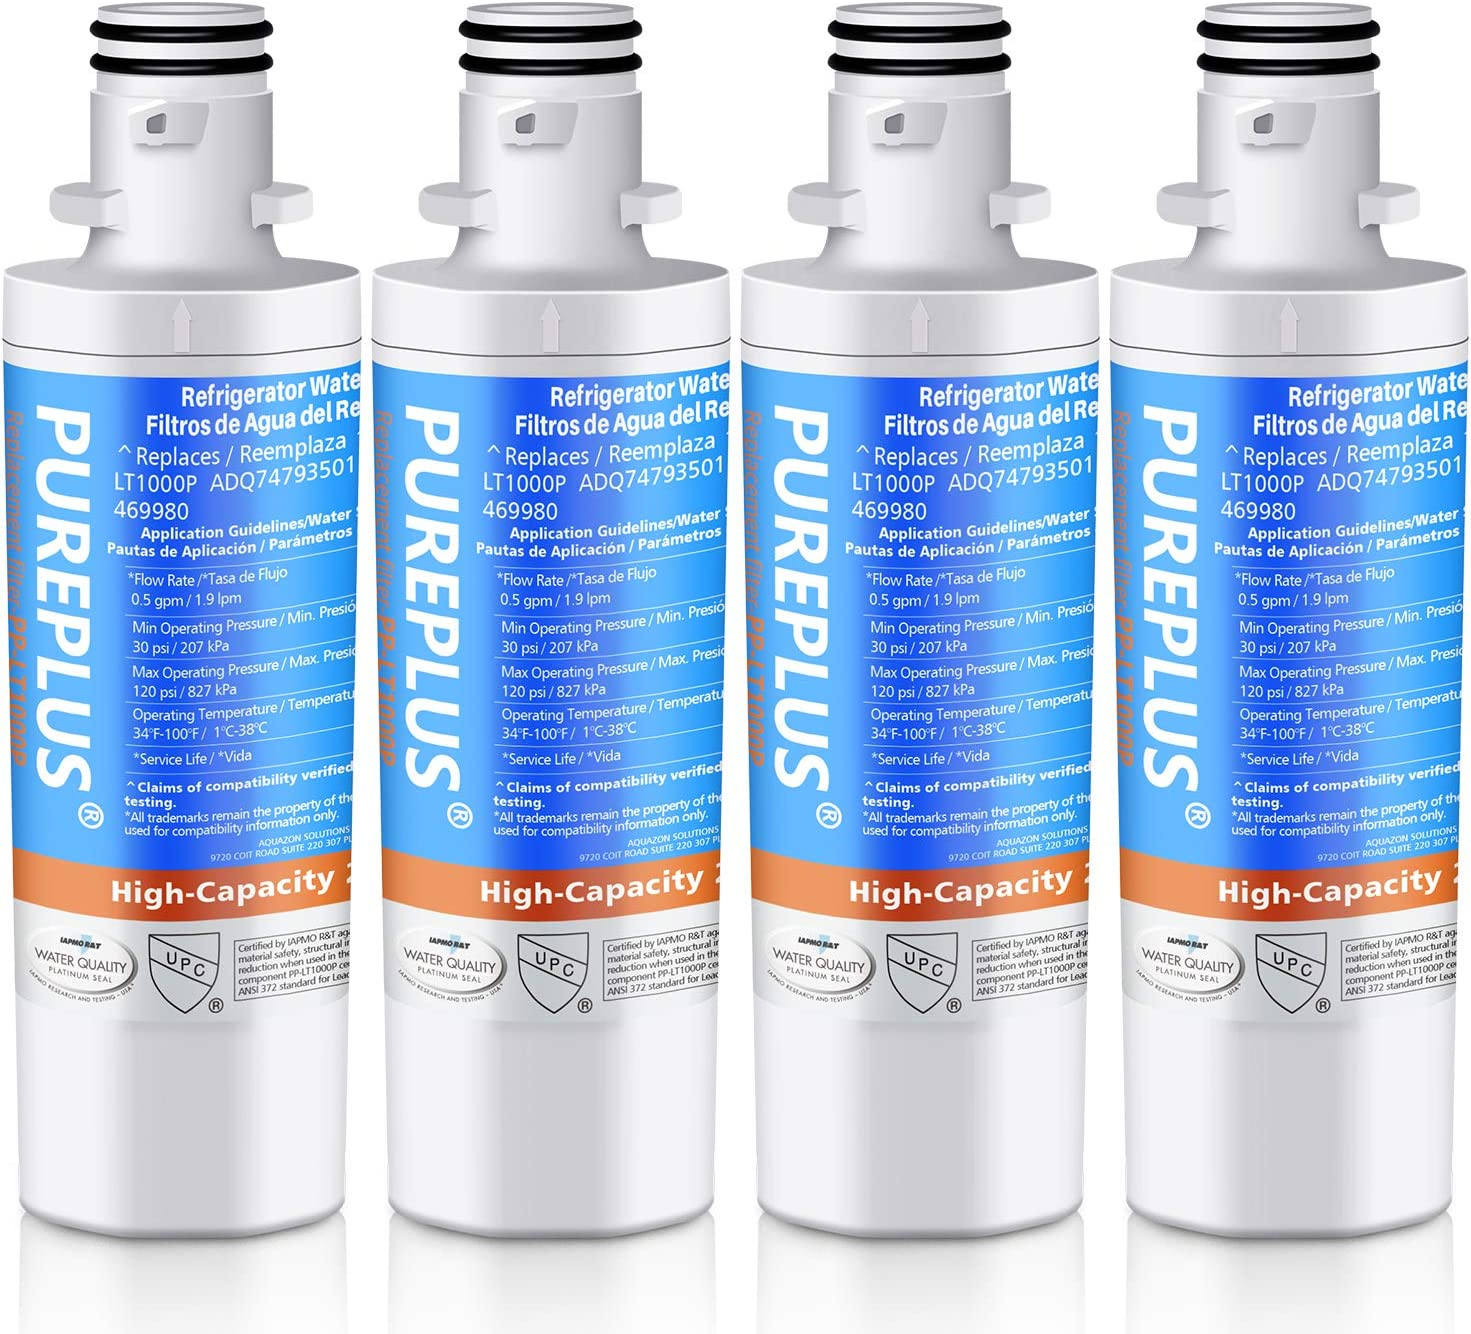 PUREPLUS LT1000P Replacement for LG ADQ747935, Kenmore 9980, LT1000, LT1000PC, MDJ64844601, ADQ74793501, ADQ74793502, LMXS28626S, LMXS30796S, LMXC23796S, LFXS26973S Refrigerator Water Filter, 4Pack